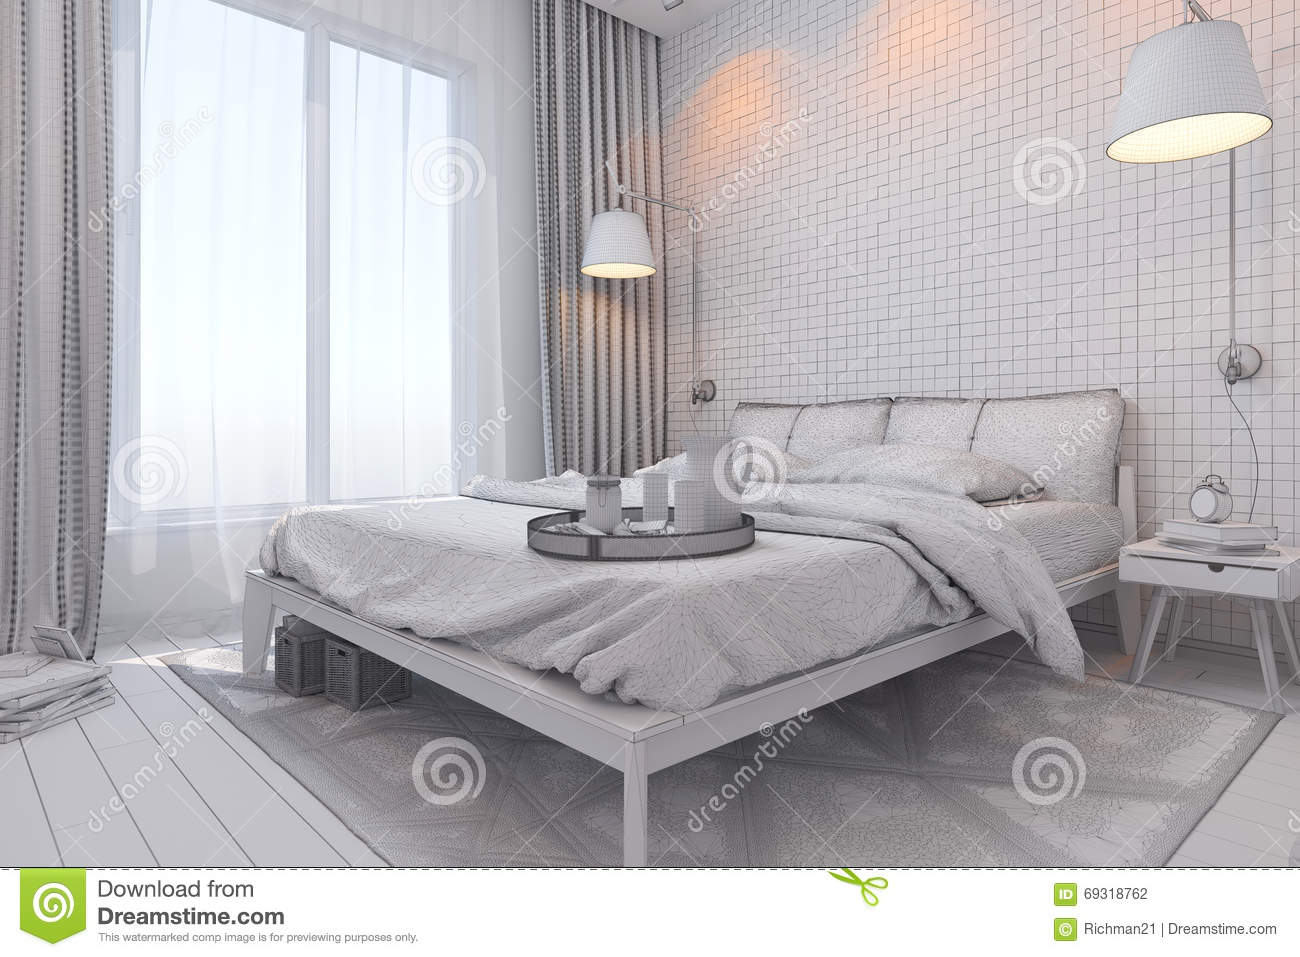 3d Render Of Bedroom Interior Design In A Contemporary Style